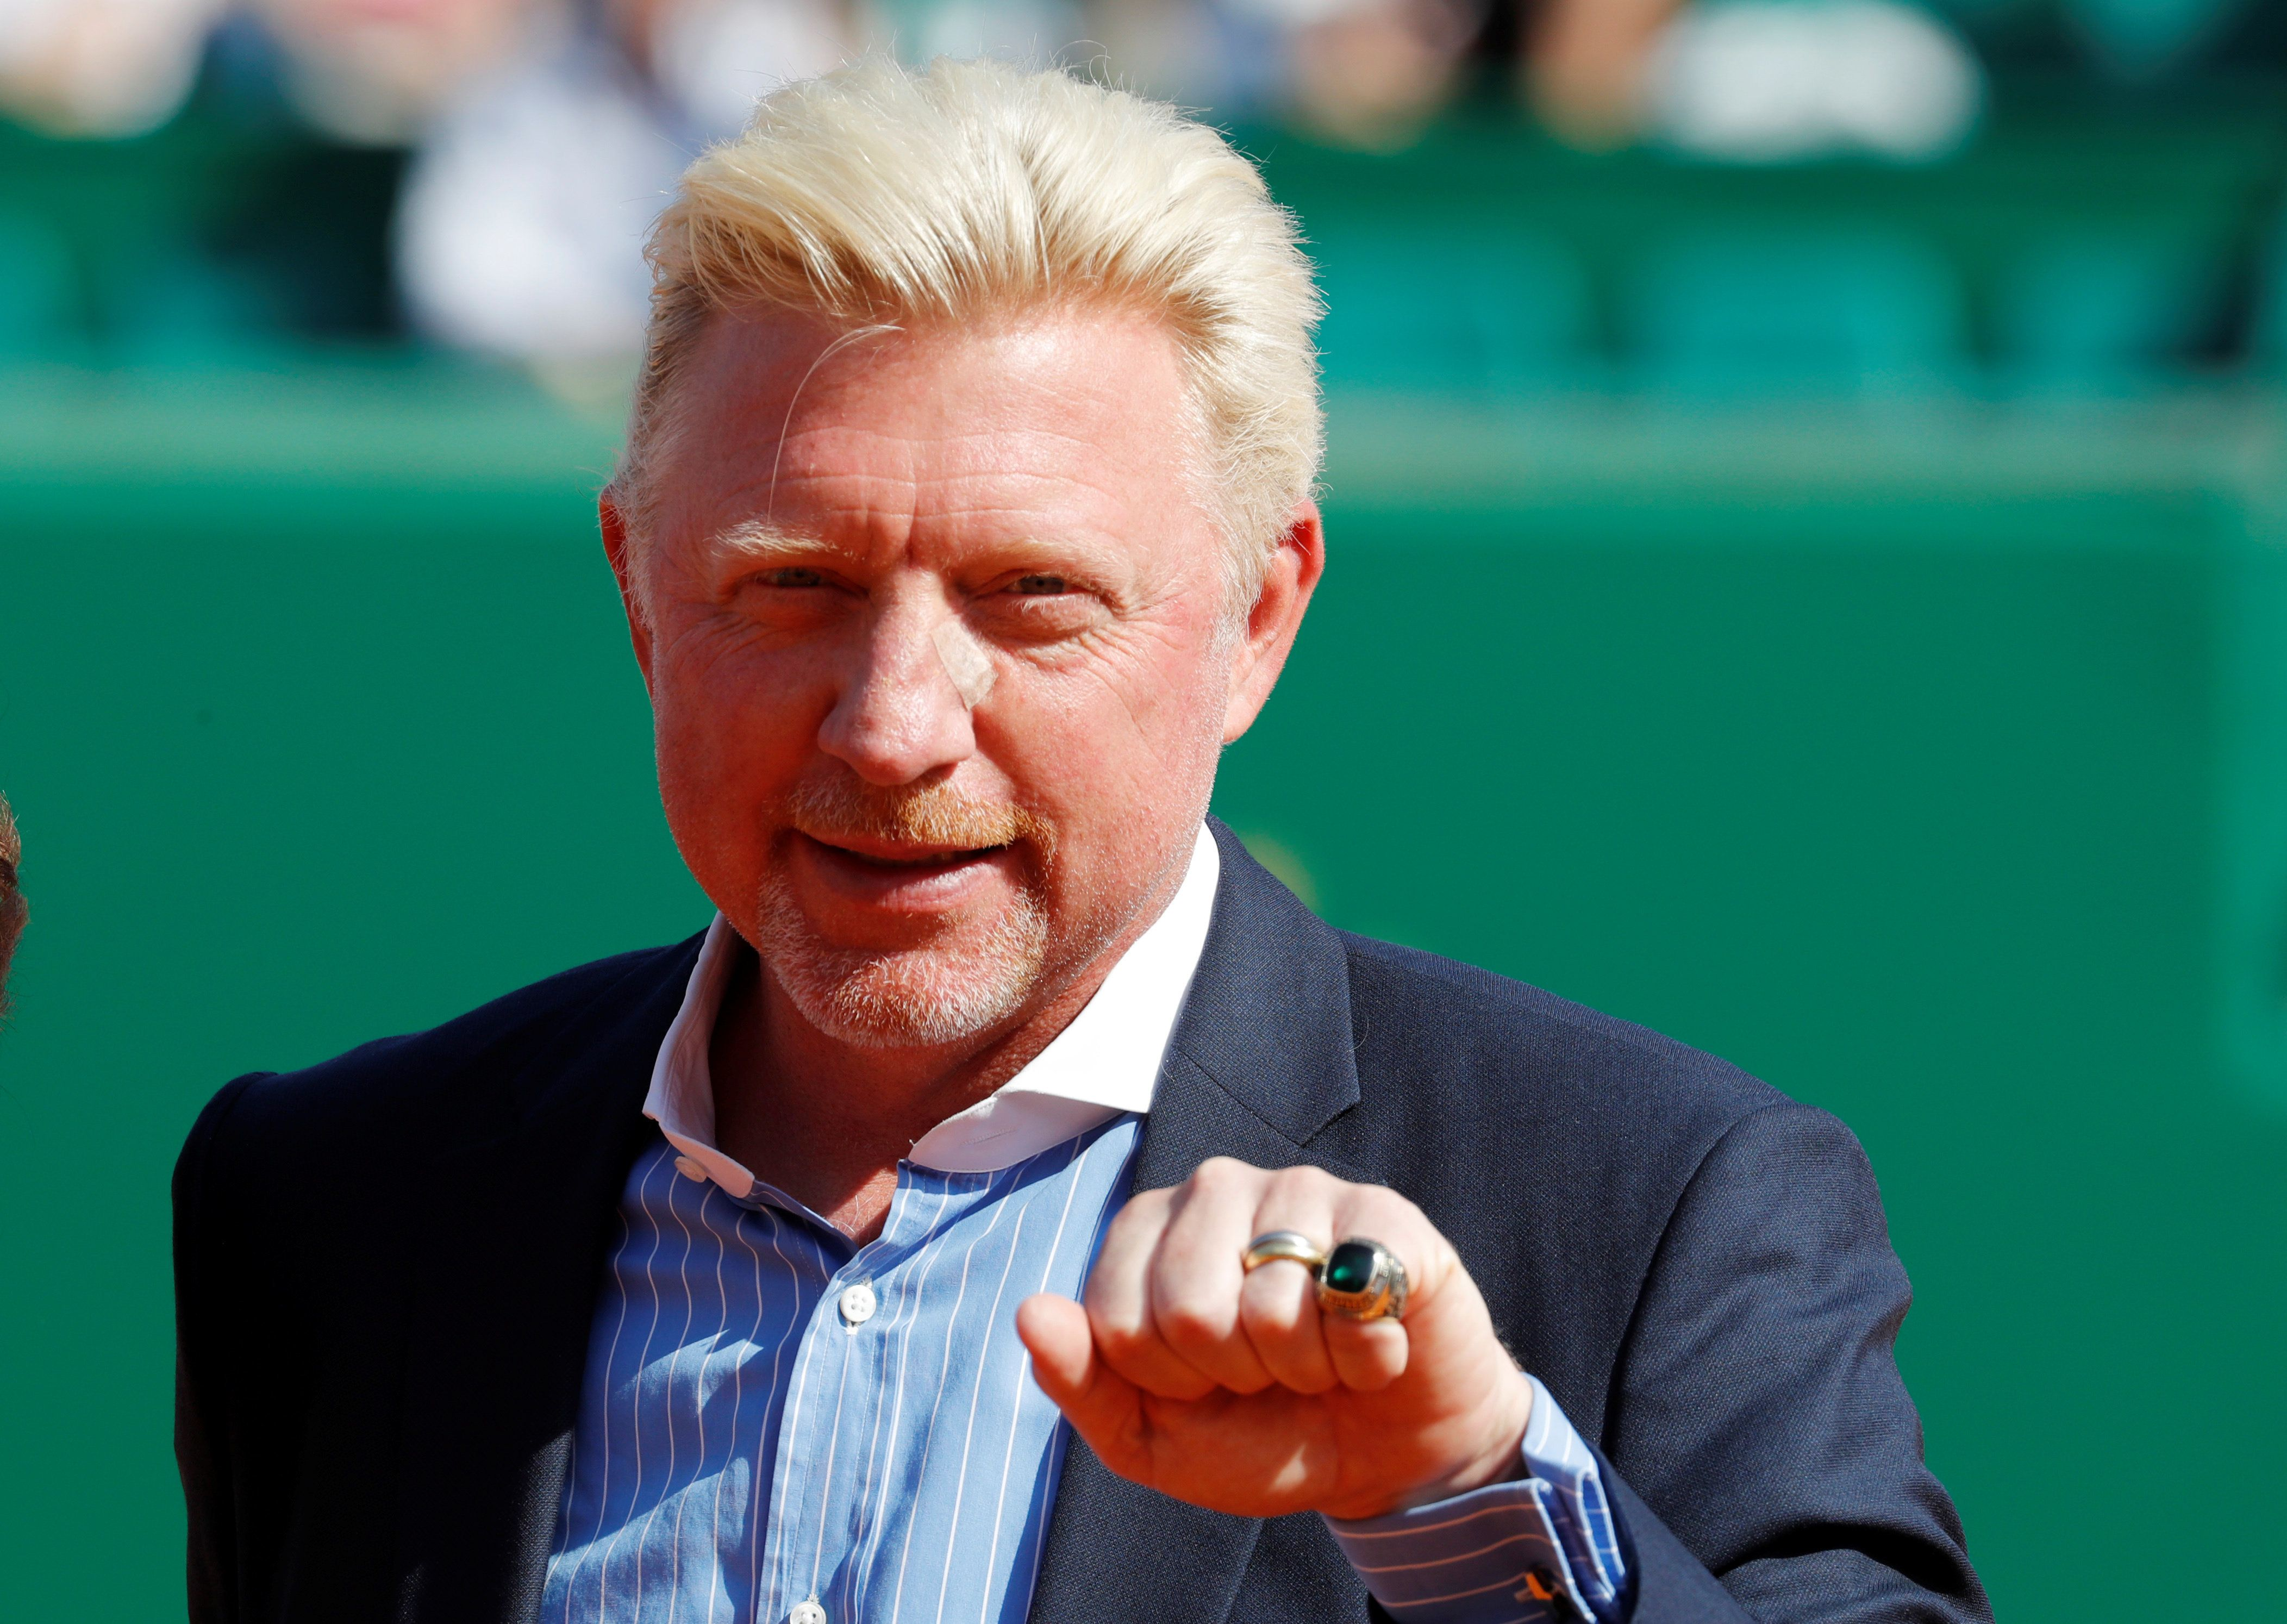 Boris Becker's Diplomatic 'Protection' Questioned By The Country Where's He's A